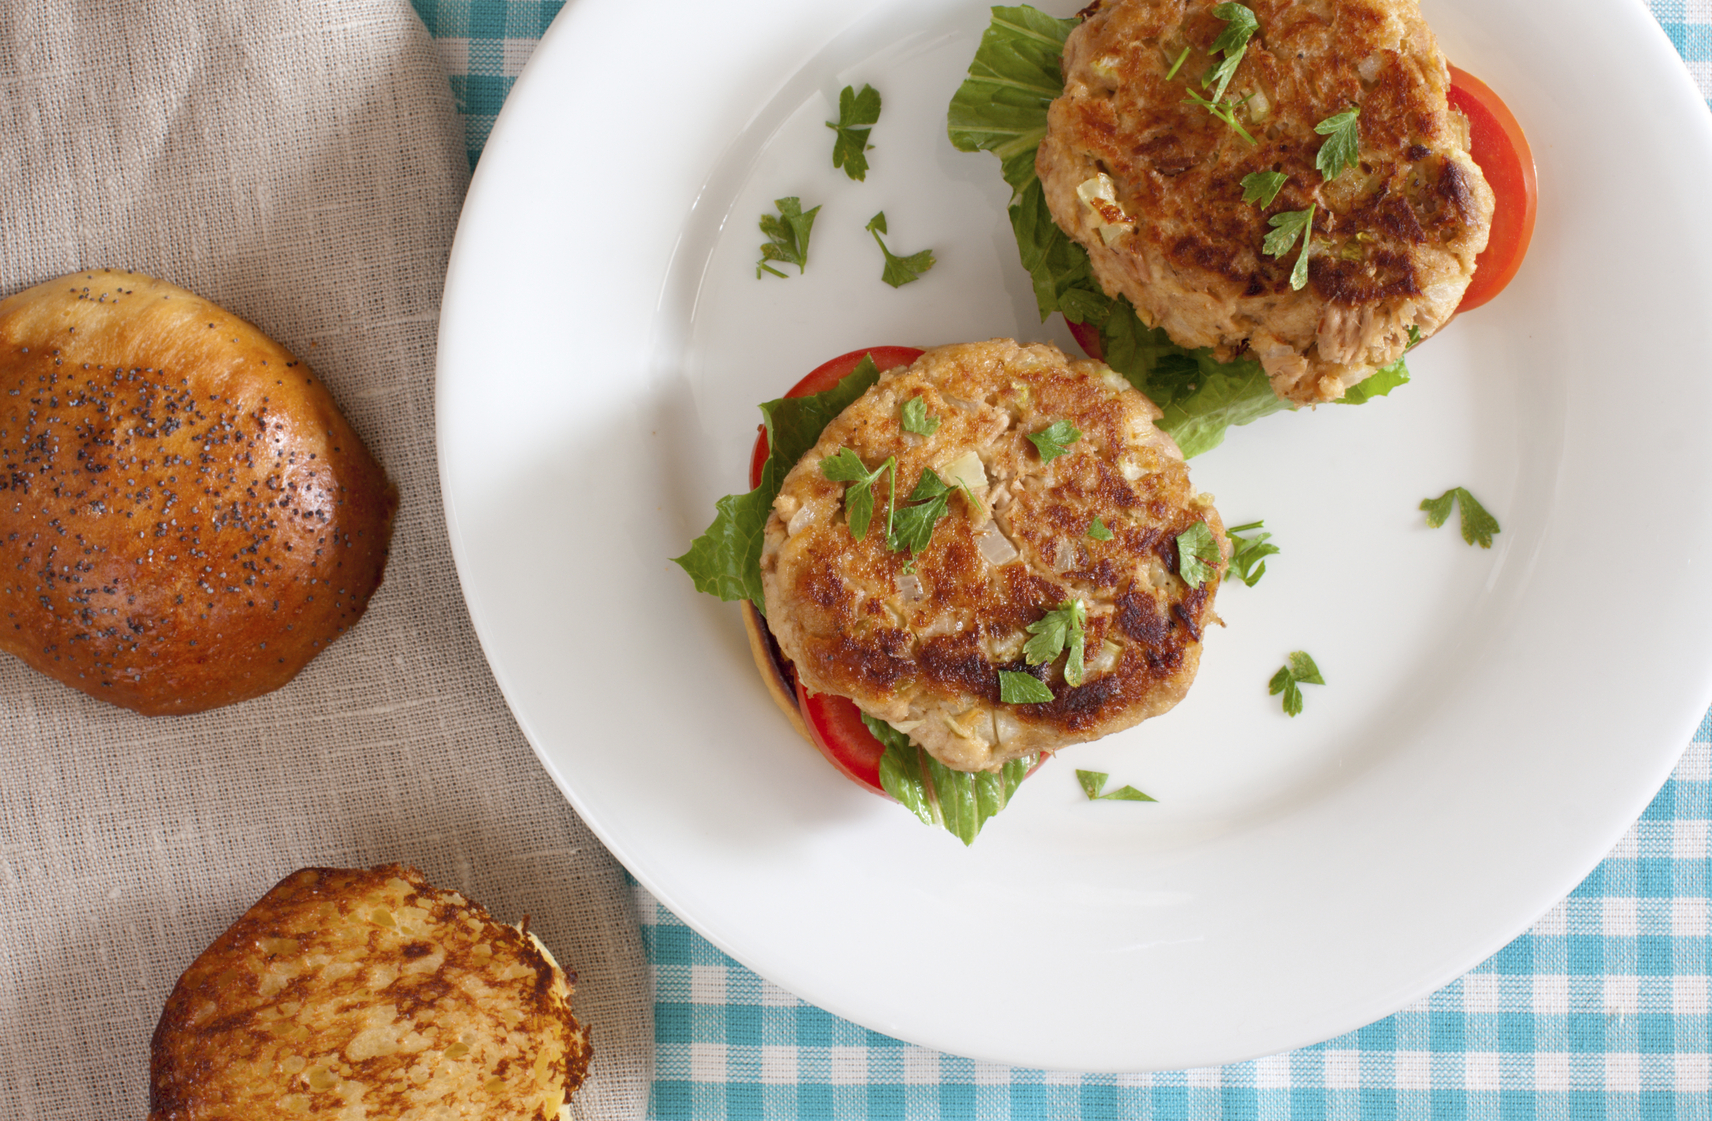 Tuna burgers are packed with protein